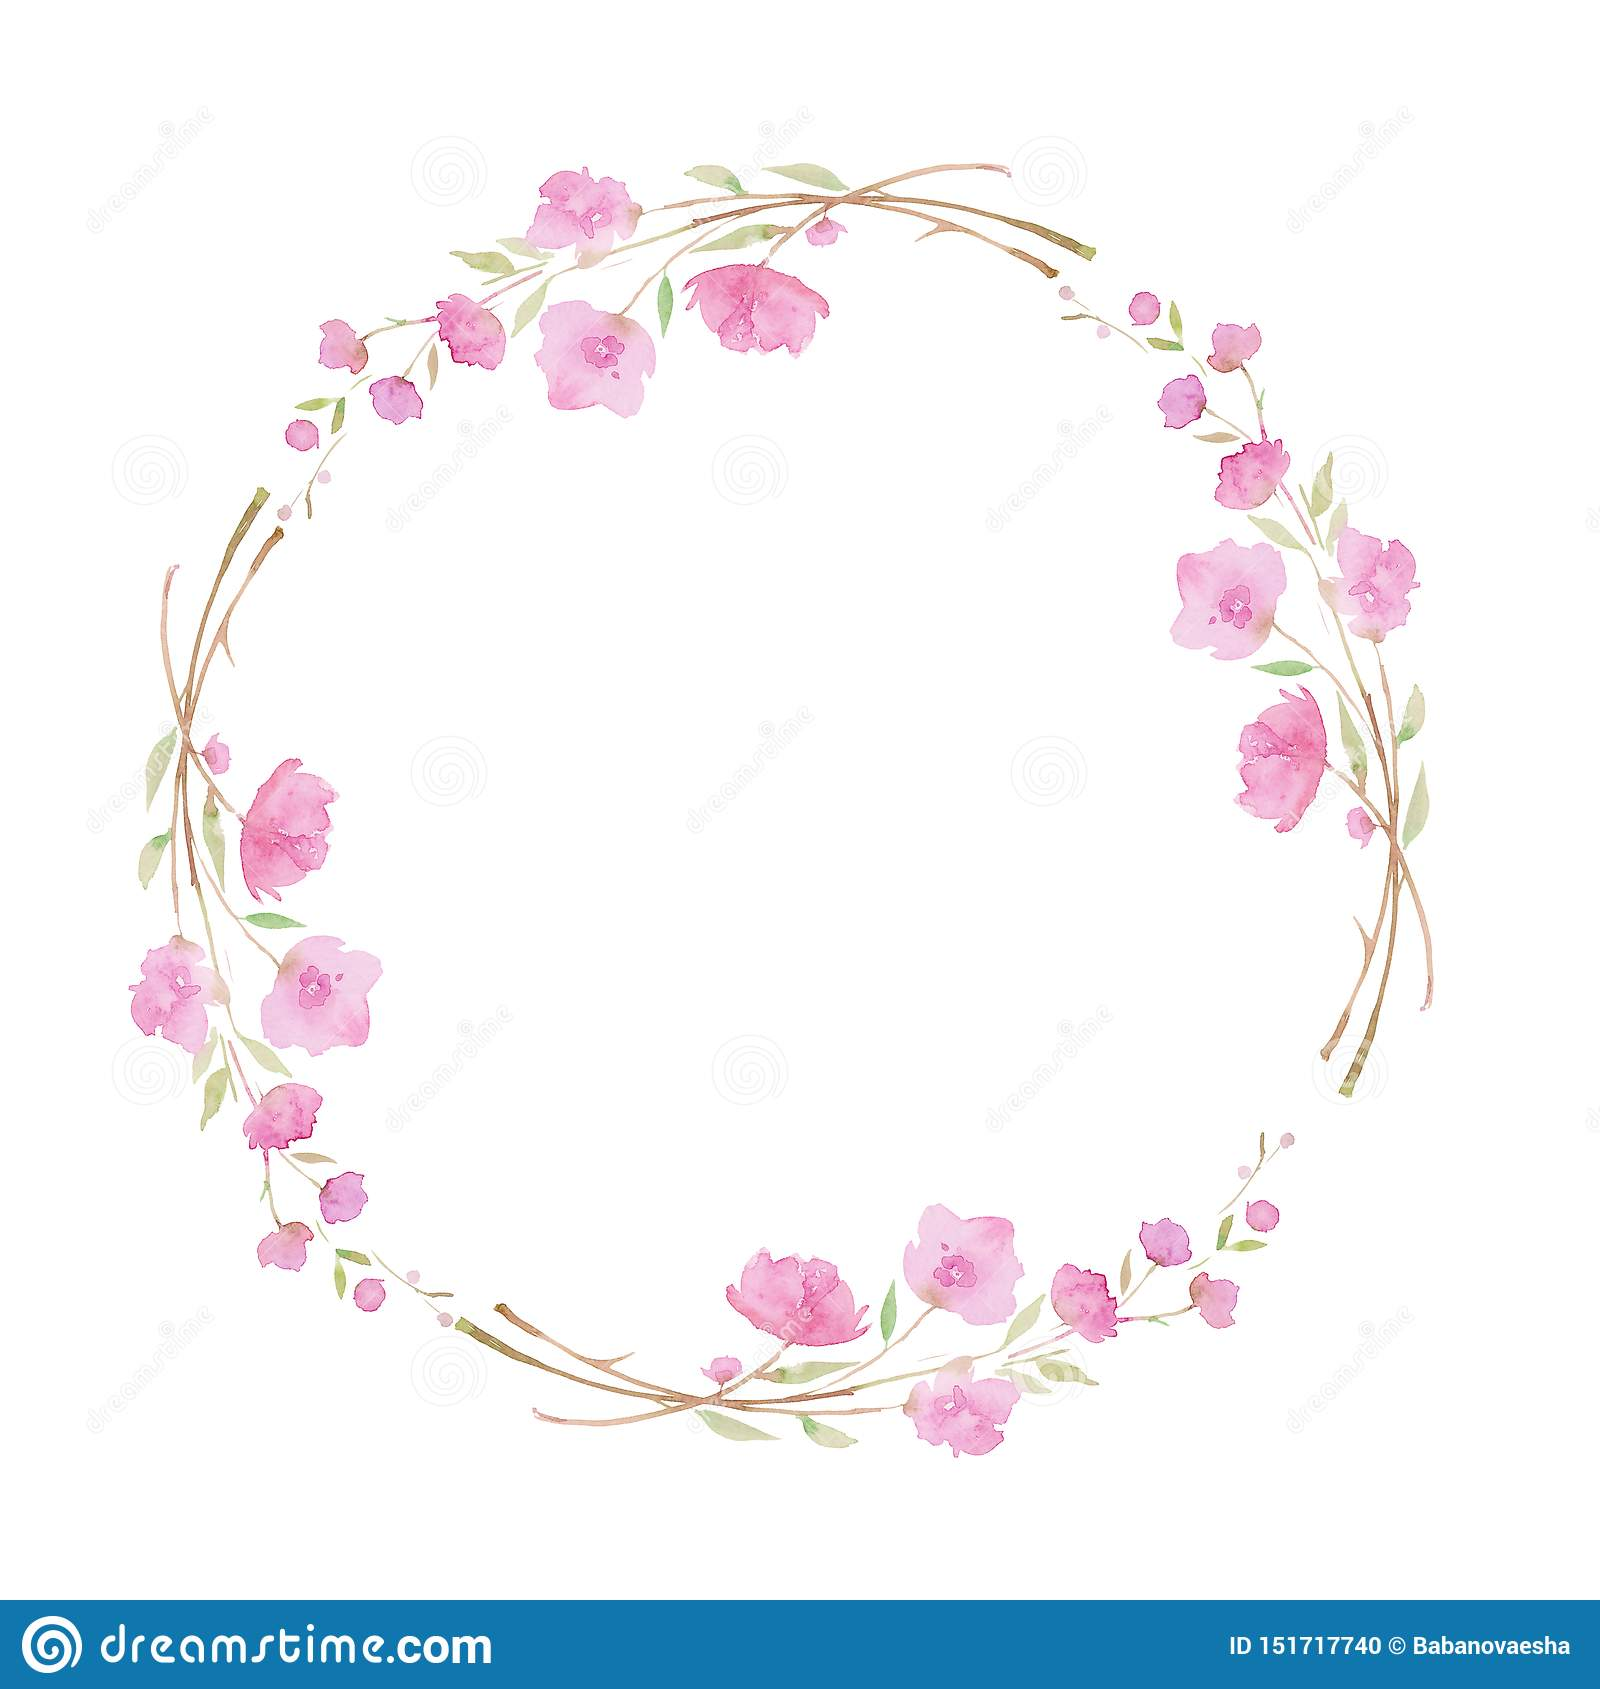 Round Wreath Frame With Cherry Blossom Sakura Branch With Pink Flowers Watercolor Illustration Stock Illustration Illustration Of Decorative Banner 151717740